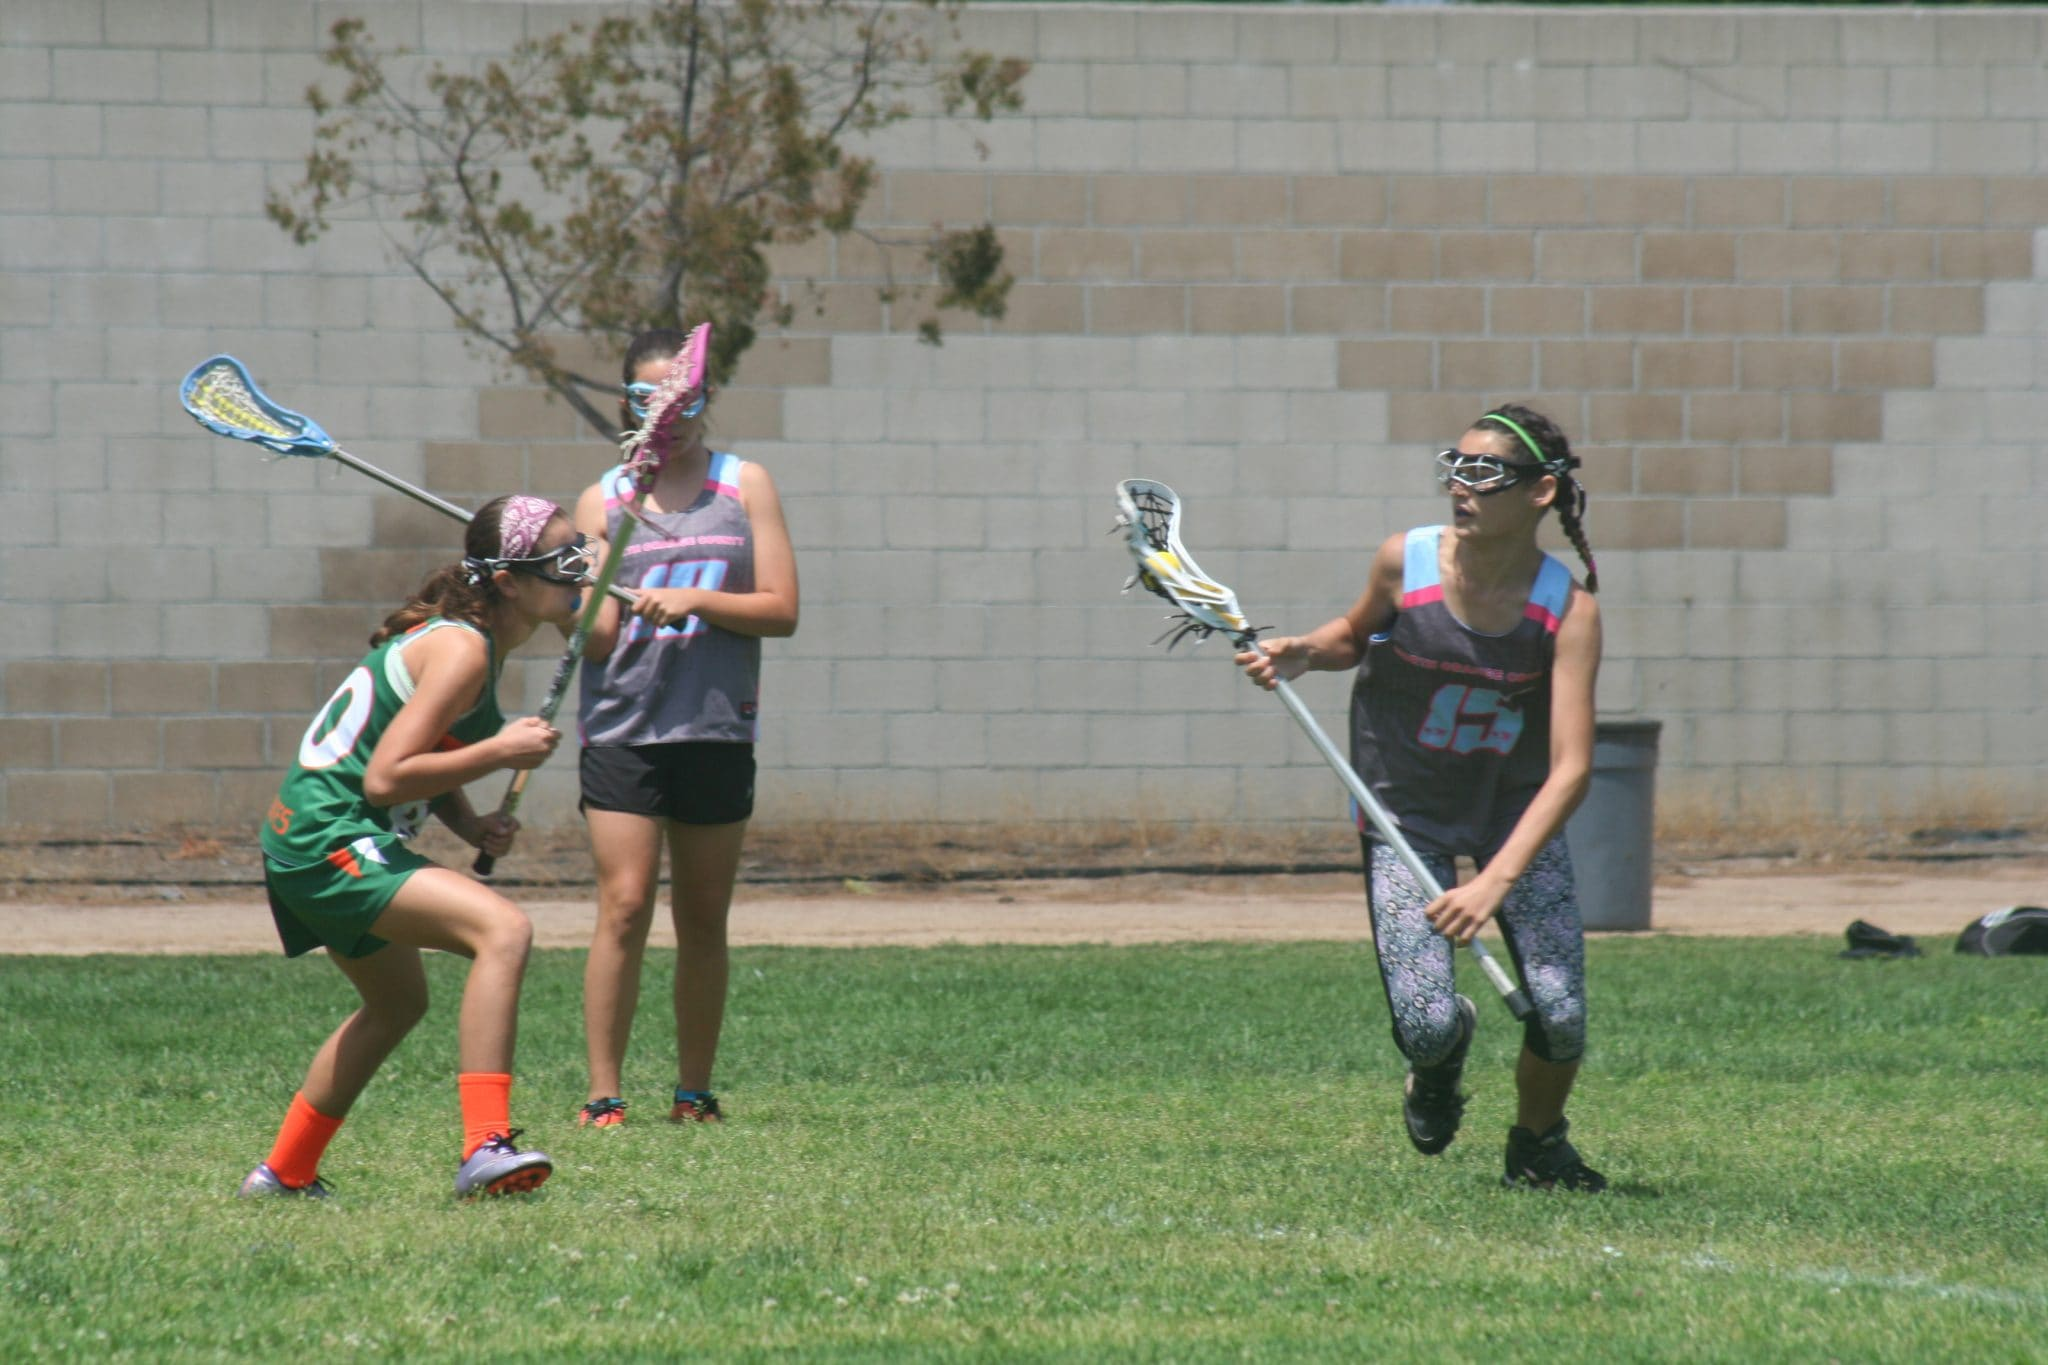 girls playing lacrosse may ask about the best sports drinks